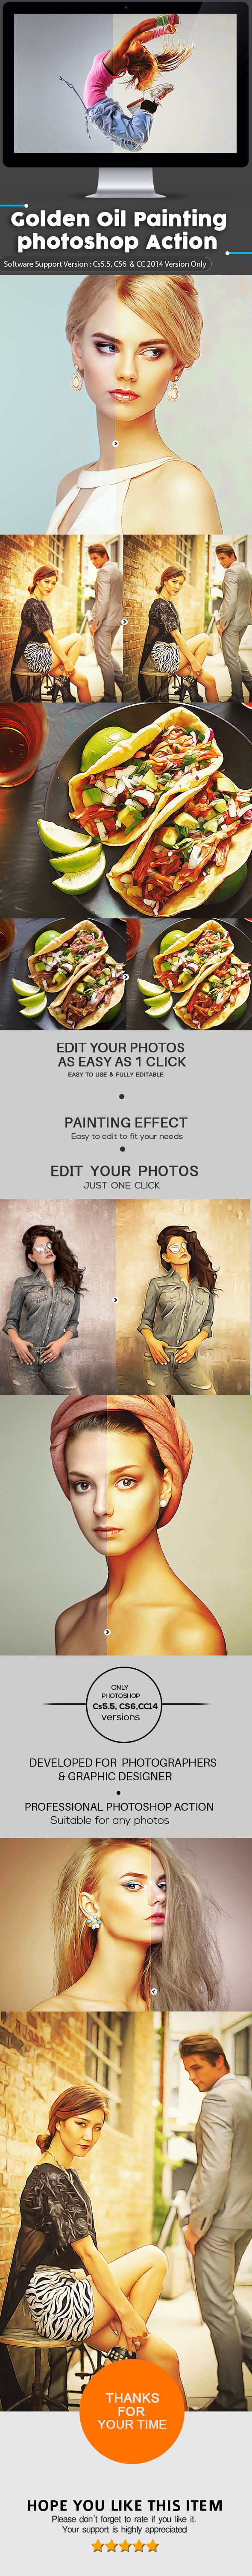 Golden Touch Oil Paint Photoshop Action - Actions Photoshop